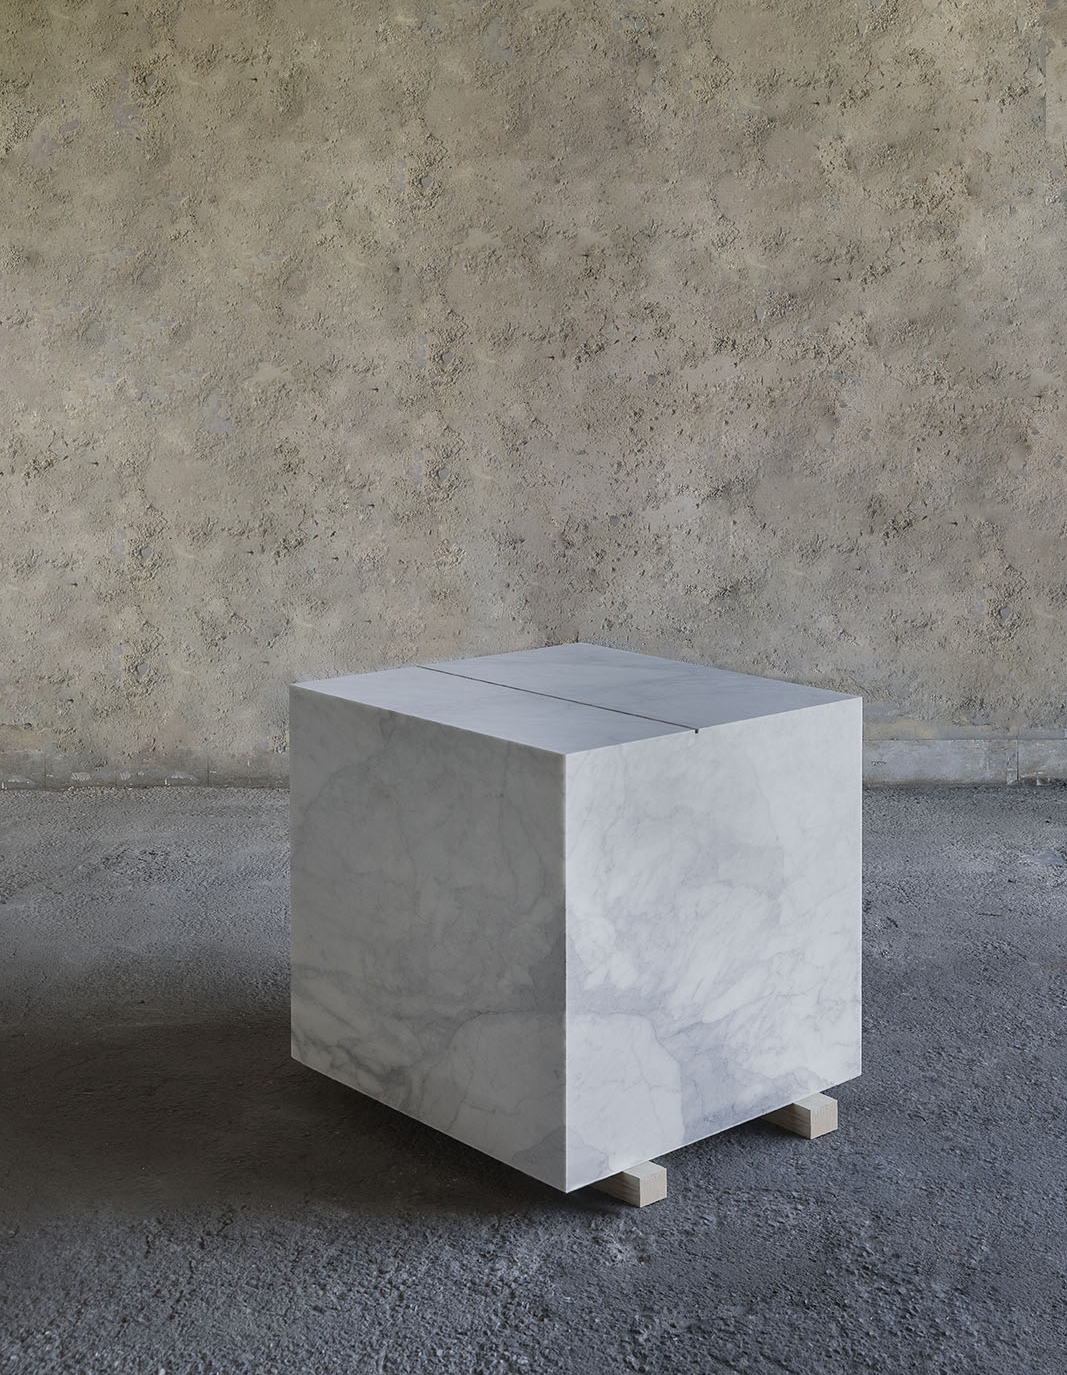 A Square Meter of Marble with a Linear Meter of Ash,  2018, marble, cigar ash, cm 100x100x100